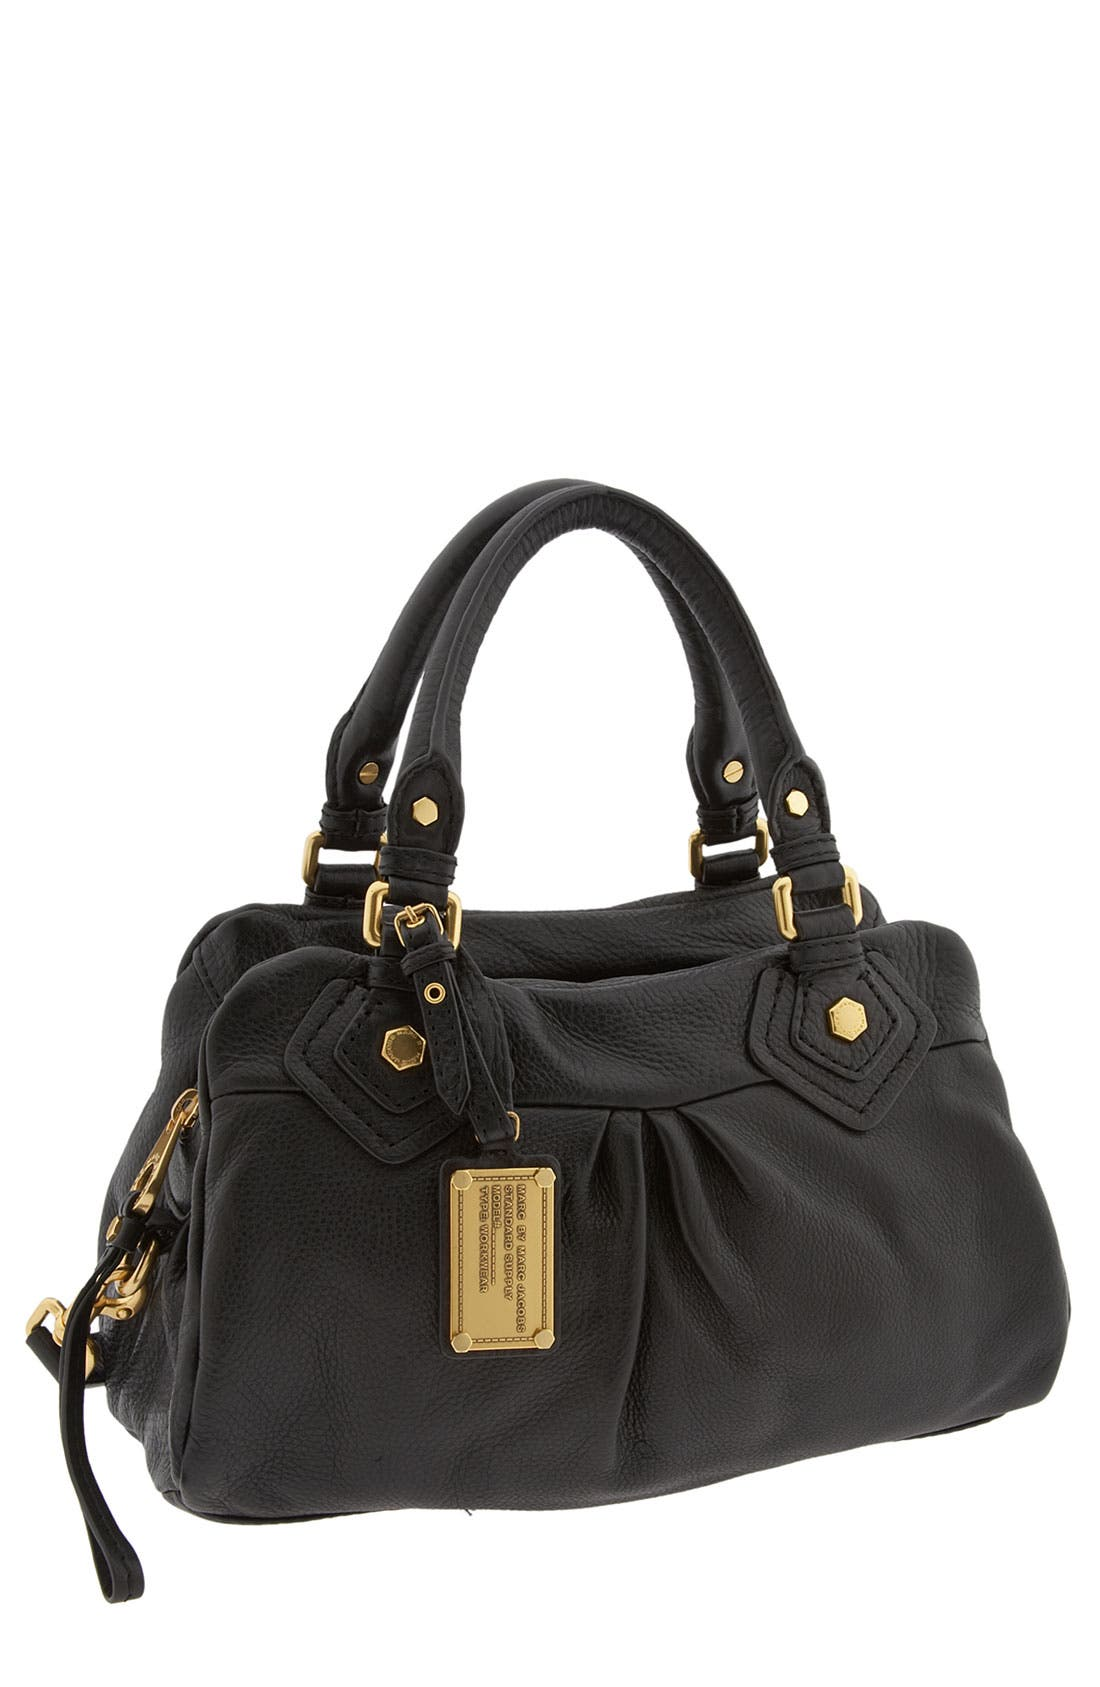 MARC BY MARC JACOBS 'Classic Q - Baby Groovee' Satchel,                         Main,                         color, 001